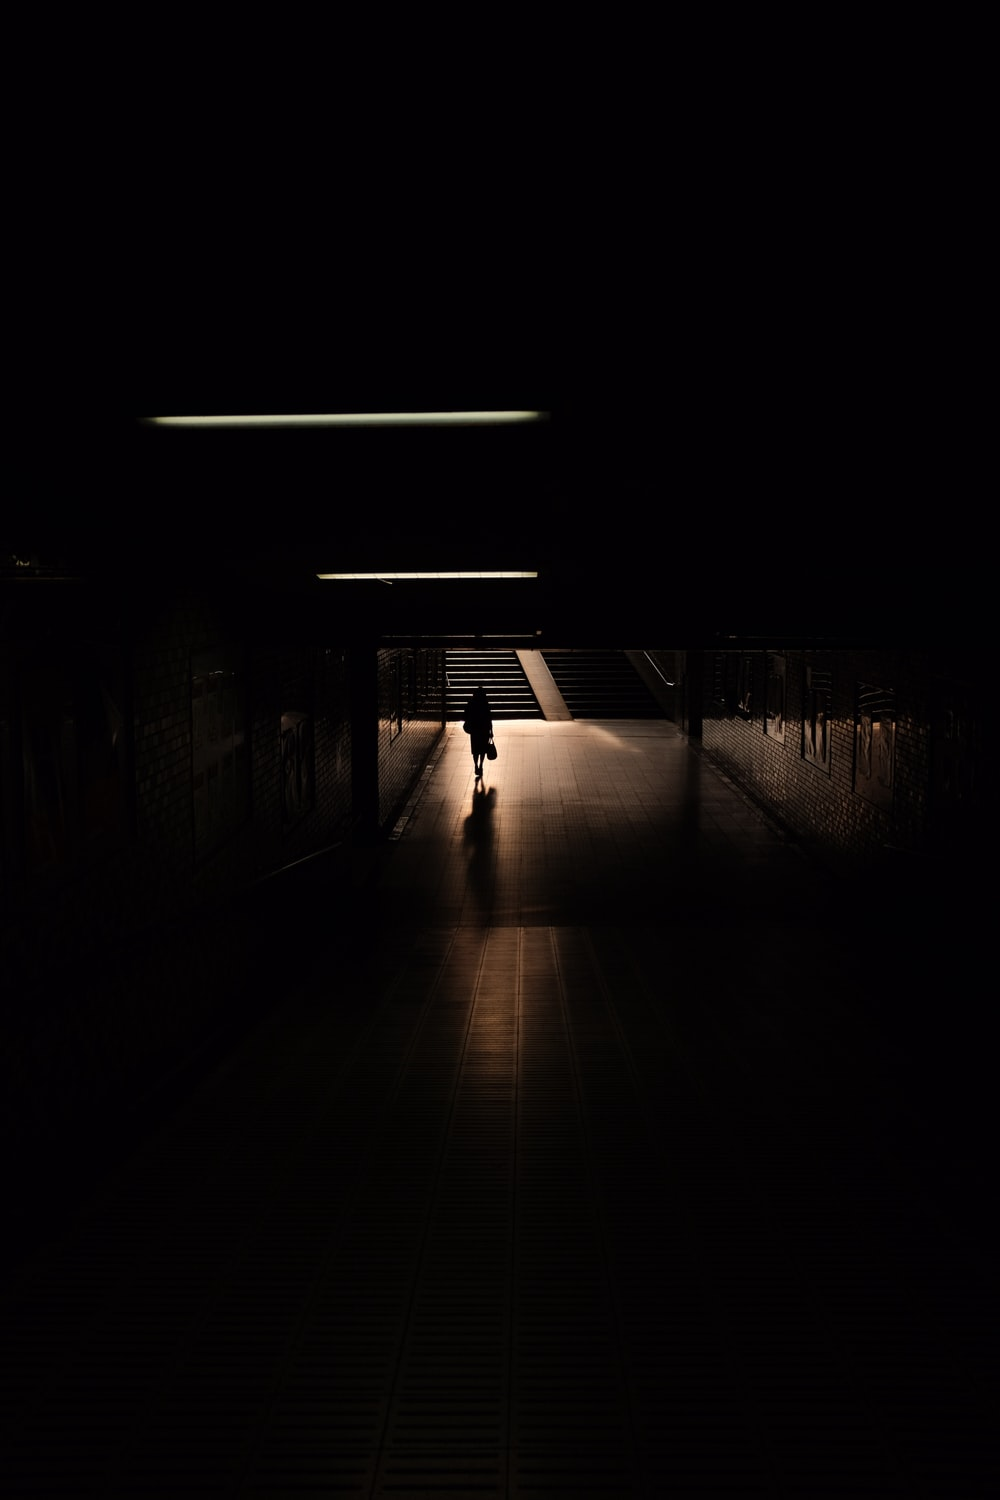 empty hallway with light turned on in the dark